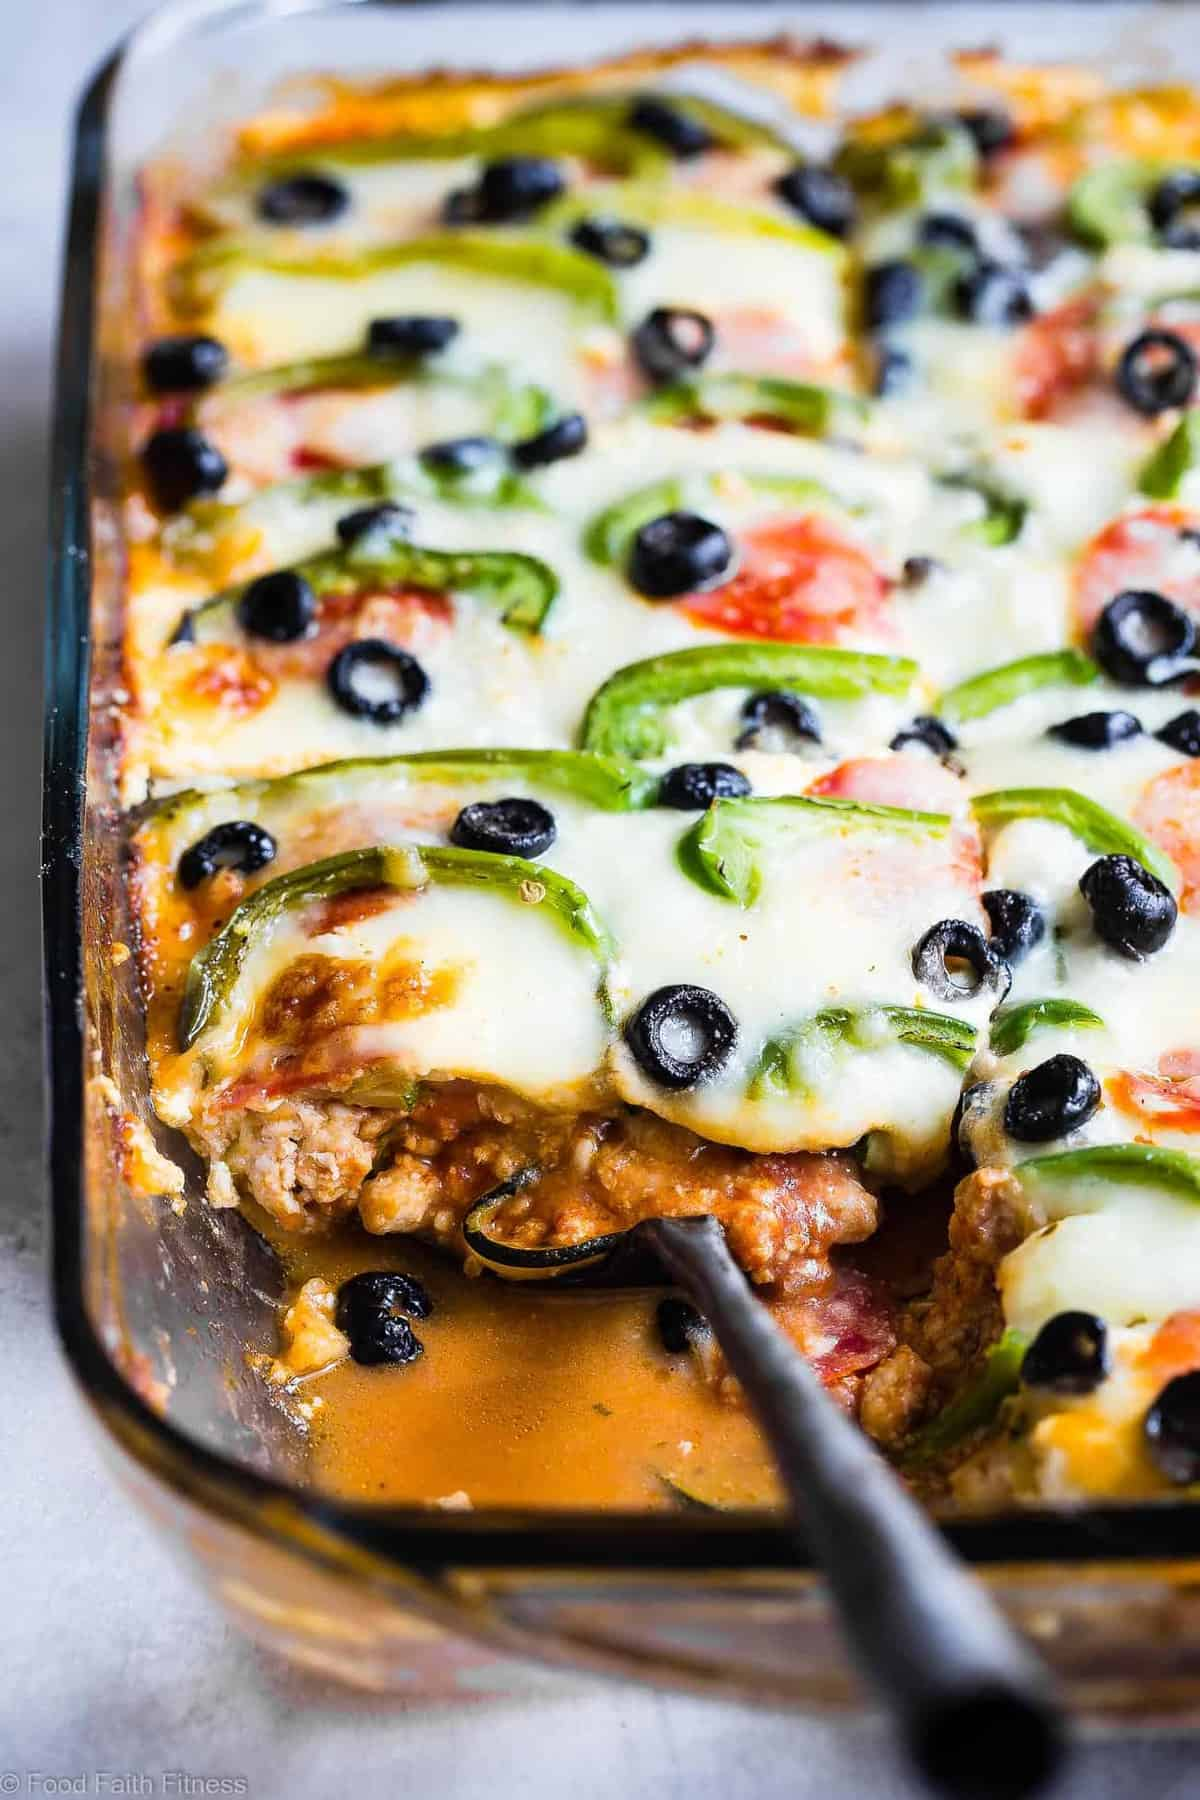 Pizza Low Carb Lasagna with Zucchini Noodles -This zucchini lasagna combines 2 classic comfort foods into one healthy and kid friendly dinner! Gluten free, under 300 calories and packed with protein too! | #Foodfaithfitness.com | #Glutenfree #Lowcarb #Healthy #KidFriendly #Lasagna